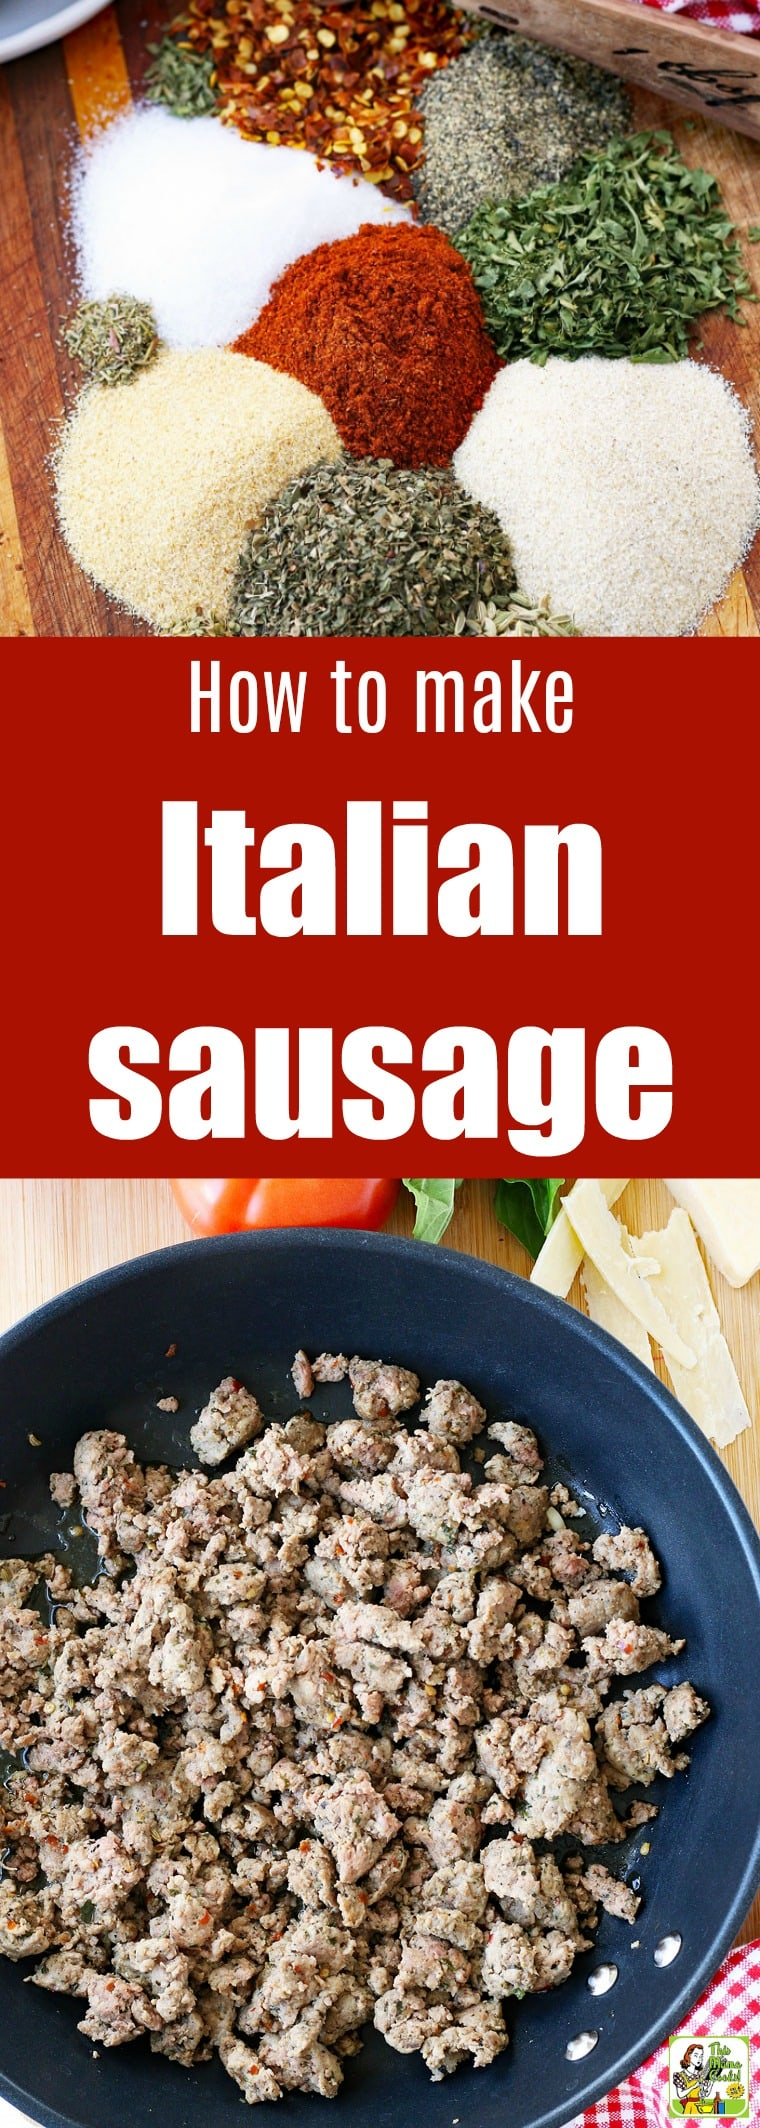 This Homemade Italian Sausage recipe is easy to make and can be used in recipes like Thanksgiving stuffing, spaghetti sauce, and lasagna. The Italian sausage seasoning can be adjusted to be mild or spicy. #recipes #easy #recipeoftheday #easyrecipe #easyrecipes #sausage #italian #italianfood #italianrecipes